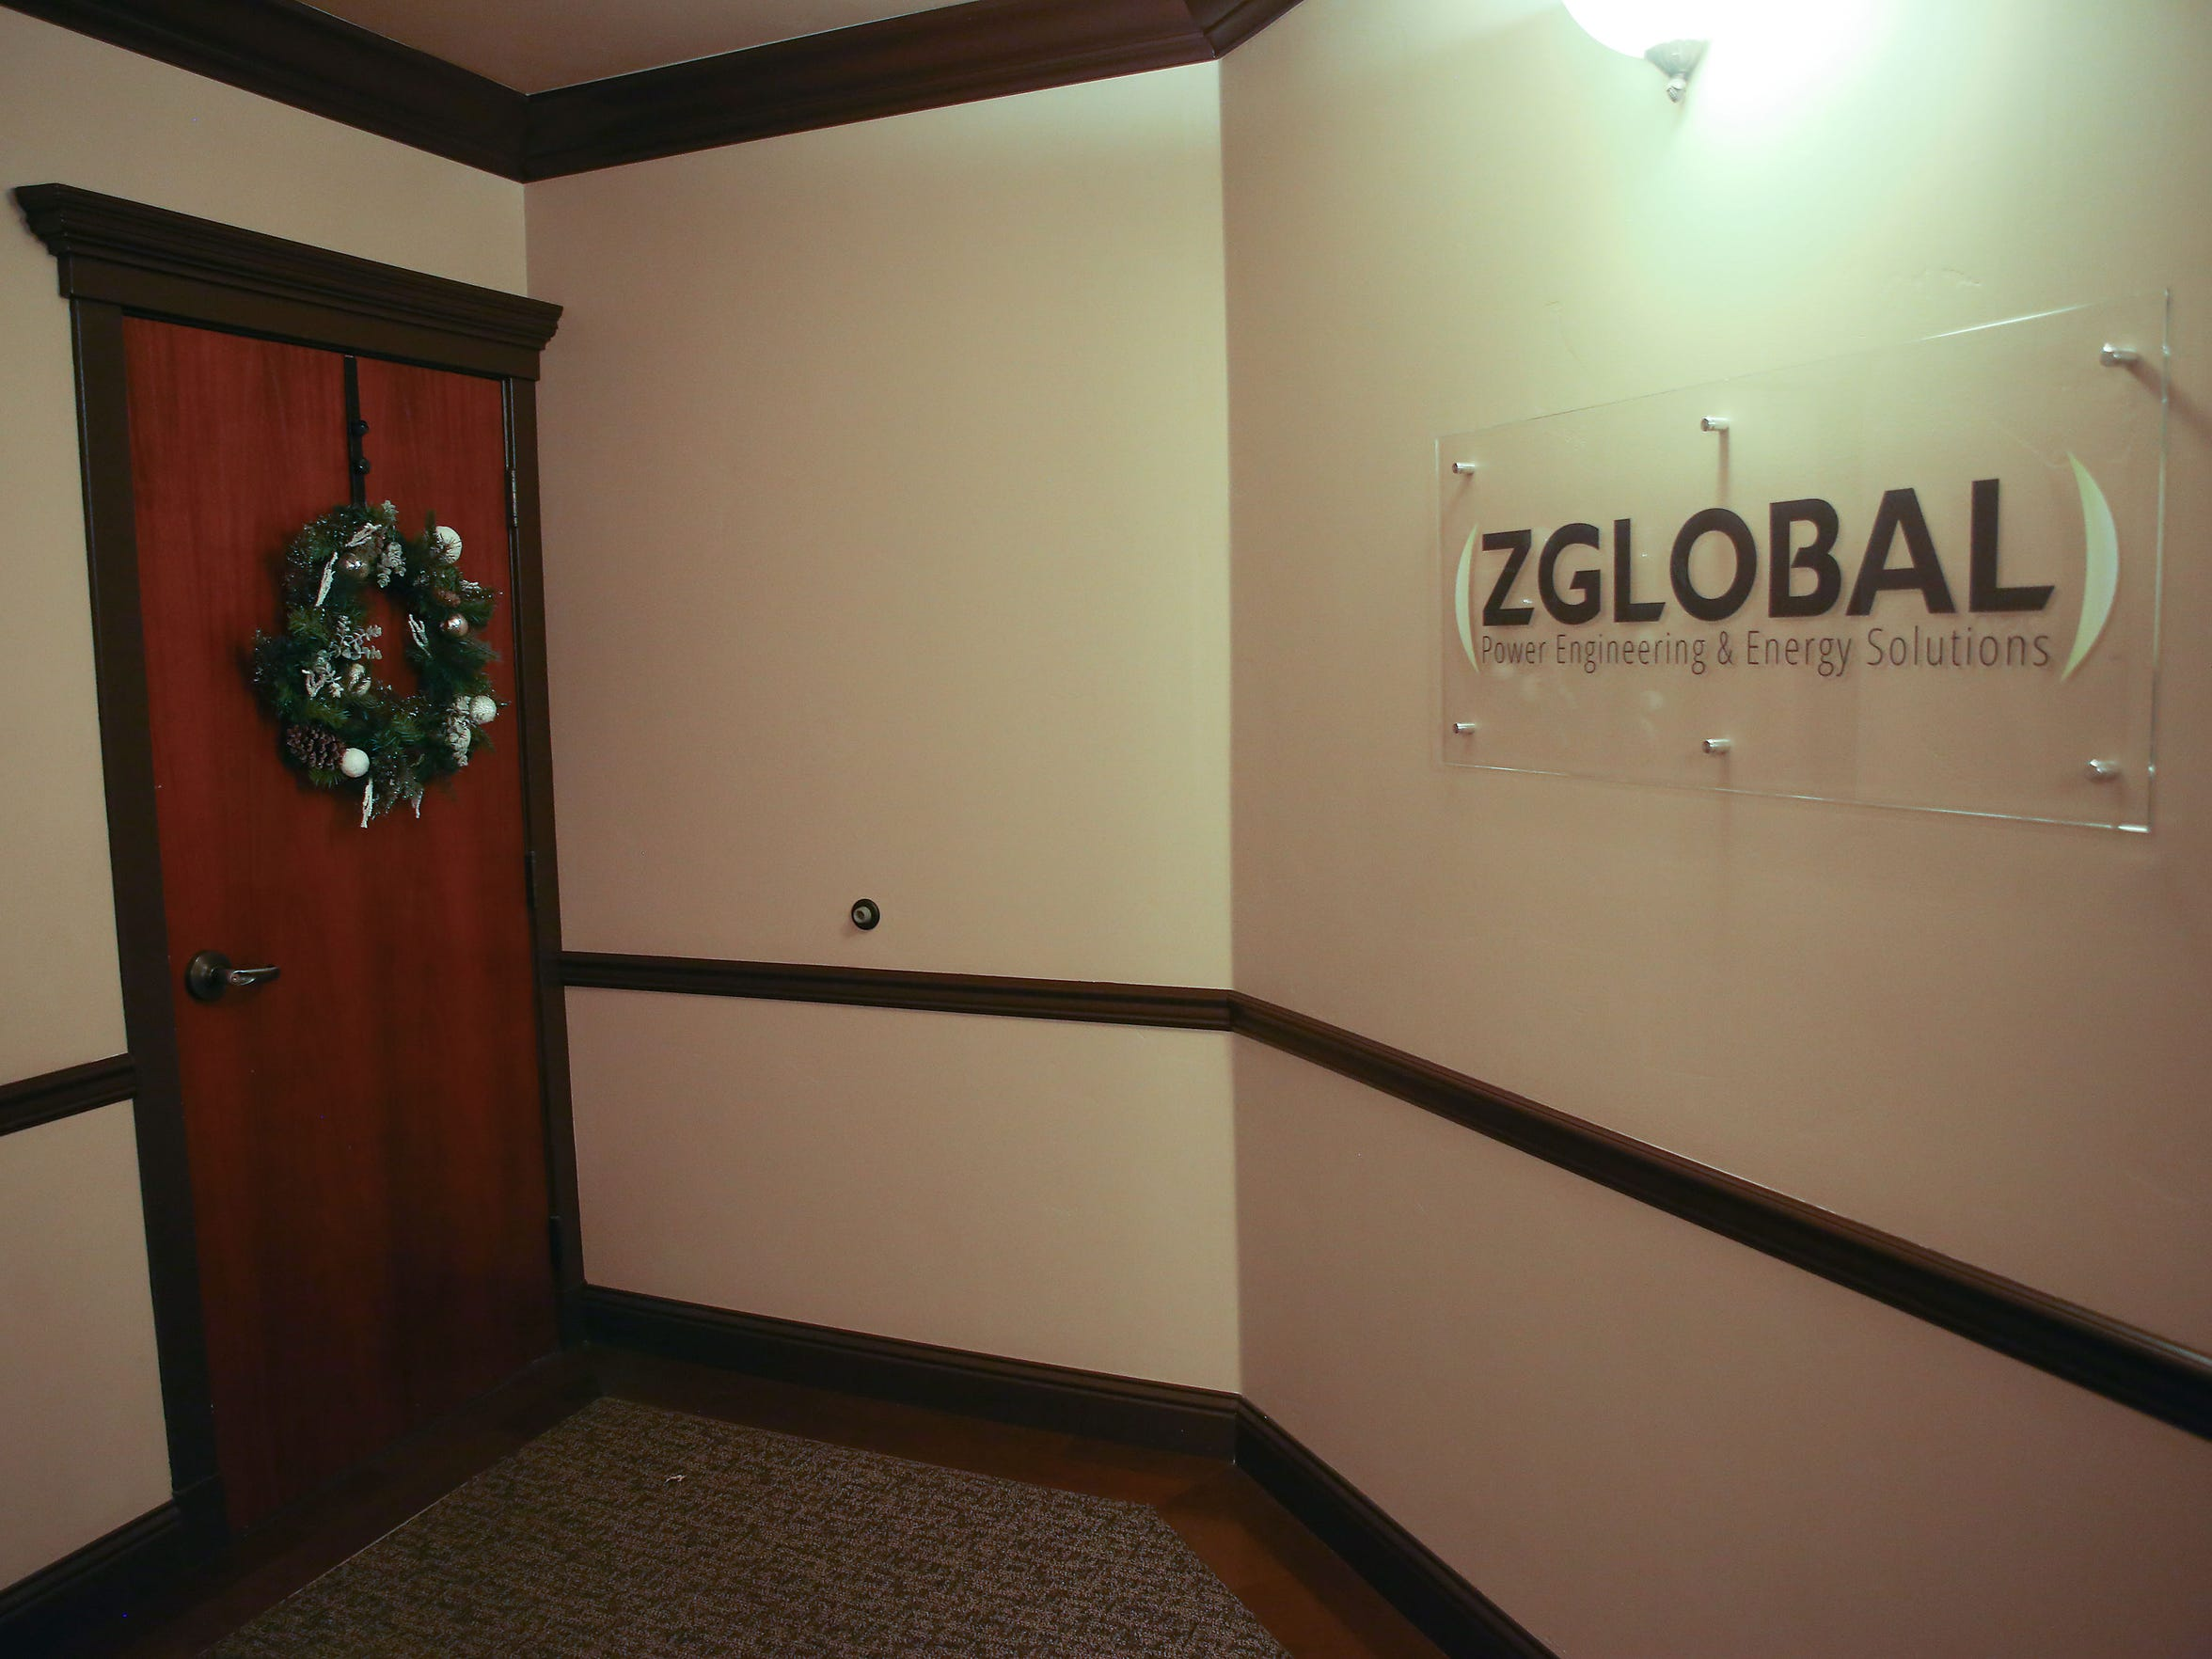 The entryway to ZGlobal's headquarters in Folsom, California,